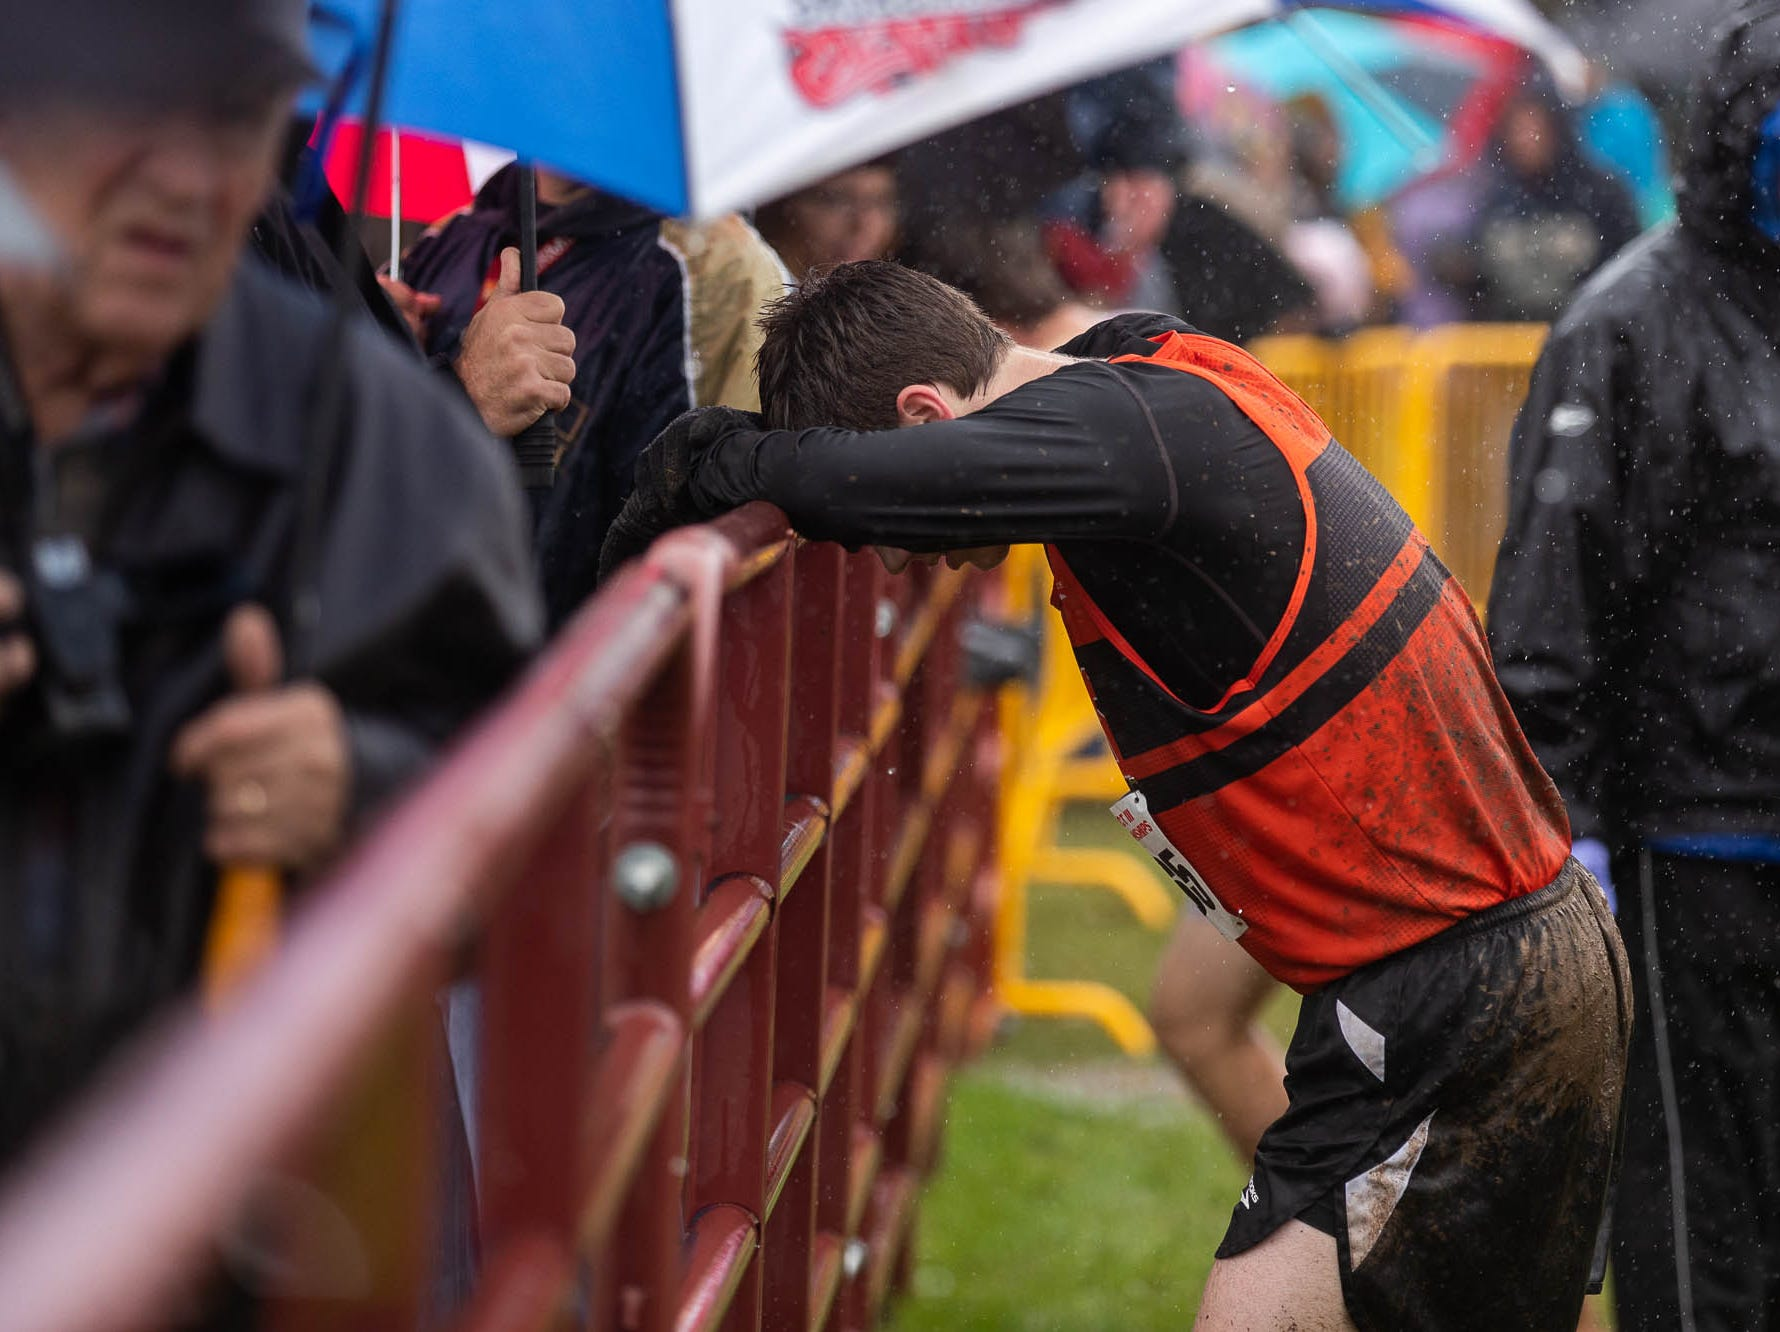 York Suburban's Jordan Ohl (1065) rests on a fence after finishing 26th in the Boys AA race during the PIAA District III Cross Country Championship, Saturday, Oct. 27, 2018, at Big Spring High School in Newville.